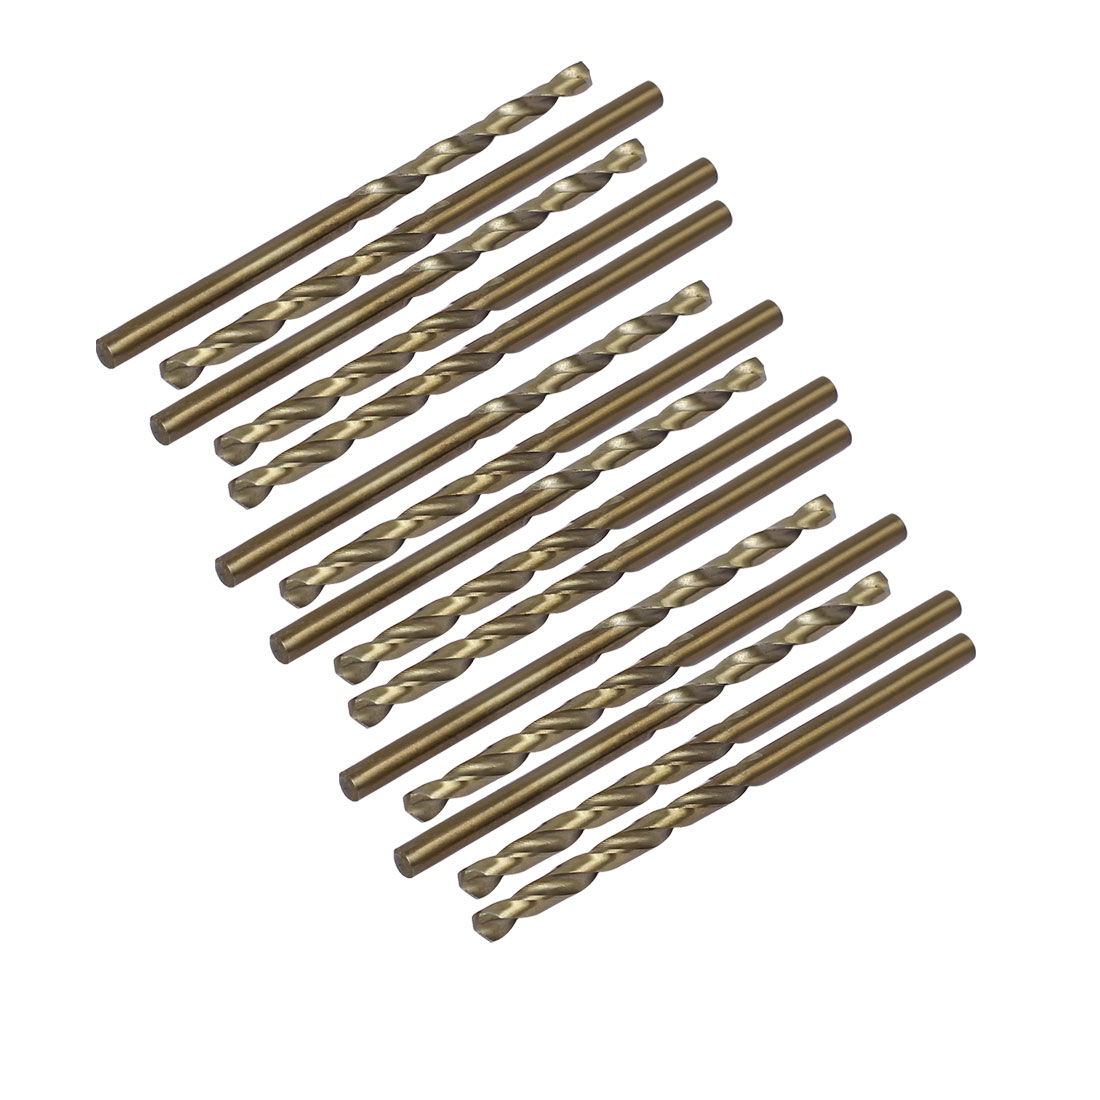 3.3mm Drilling Dia HSS Cobalt Metric Spiral Twist Drill Bit Rotary Tool 15pcs